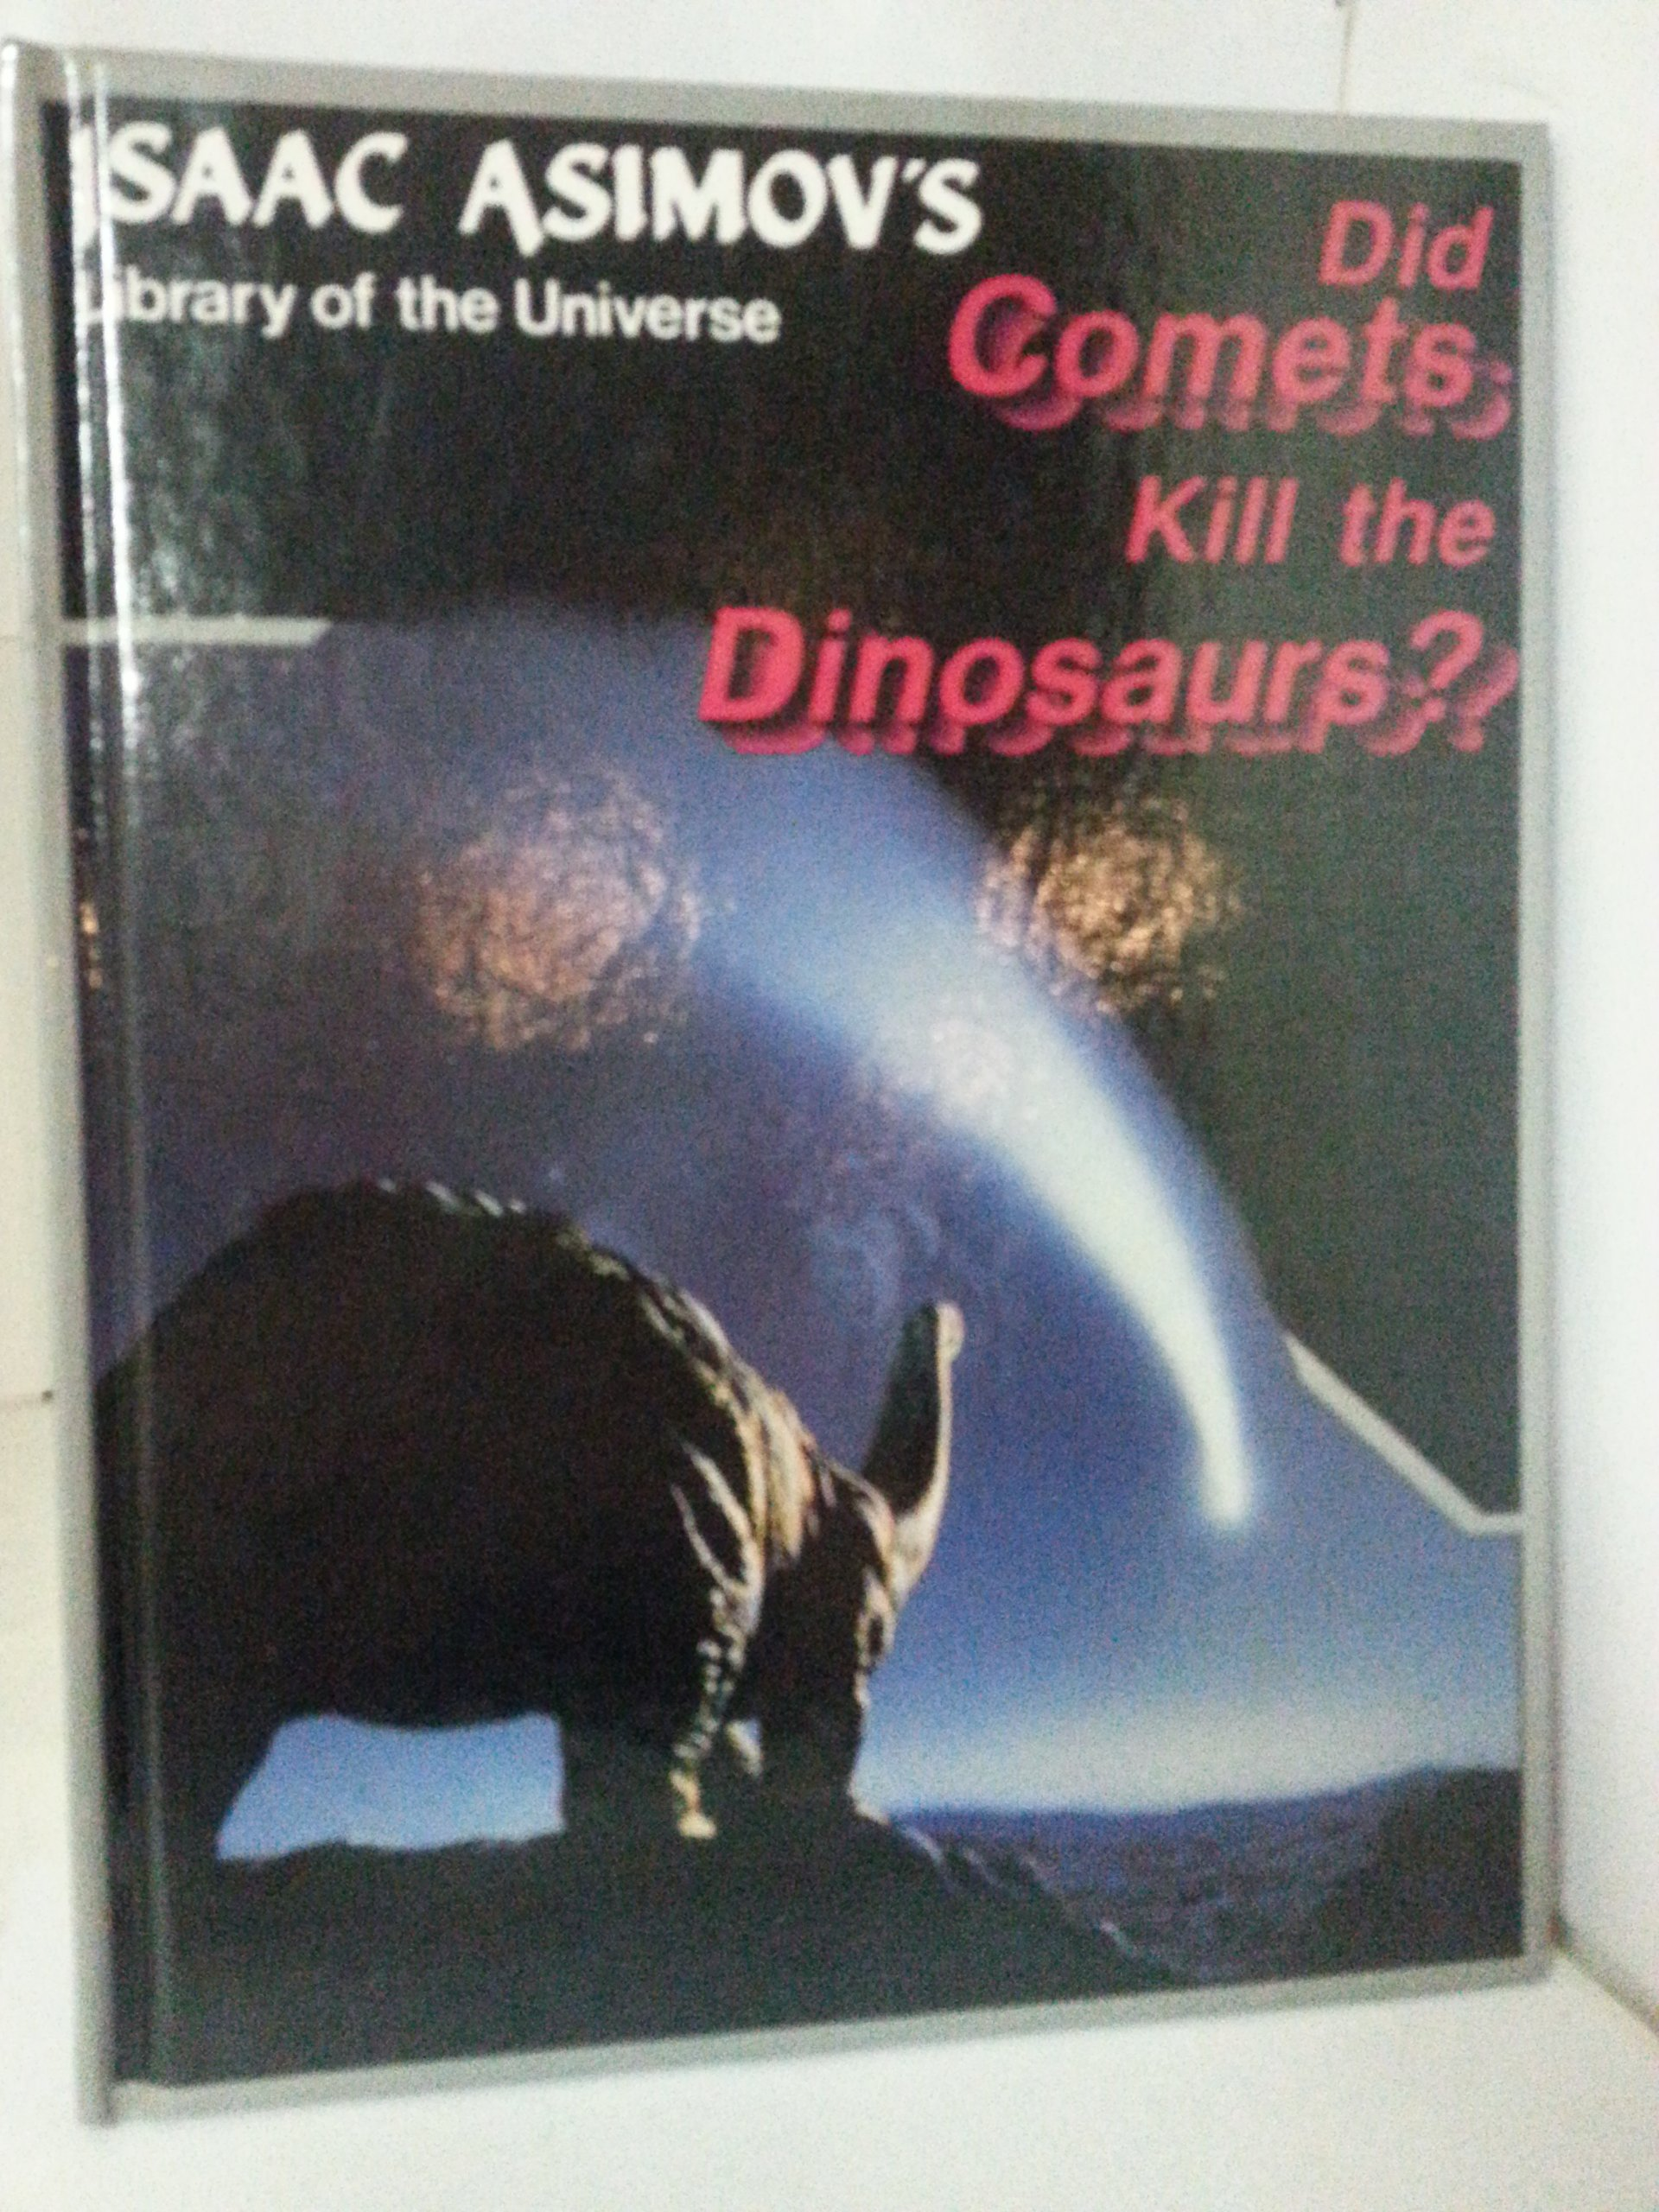 Did Comets Kill the Dinosaurs? (Isaac Asimov's Library of the Universe)